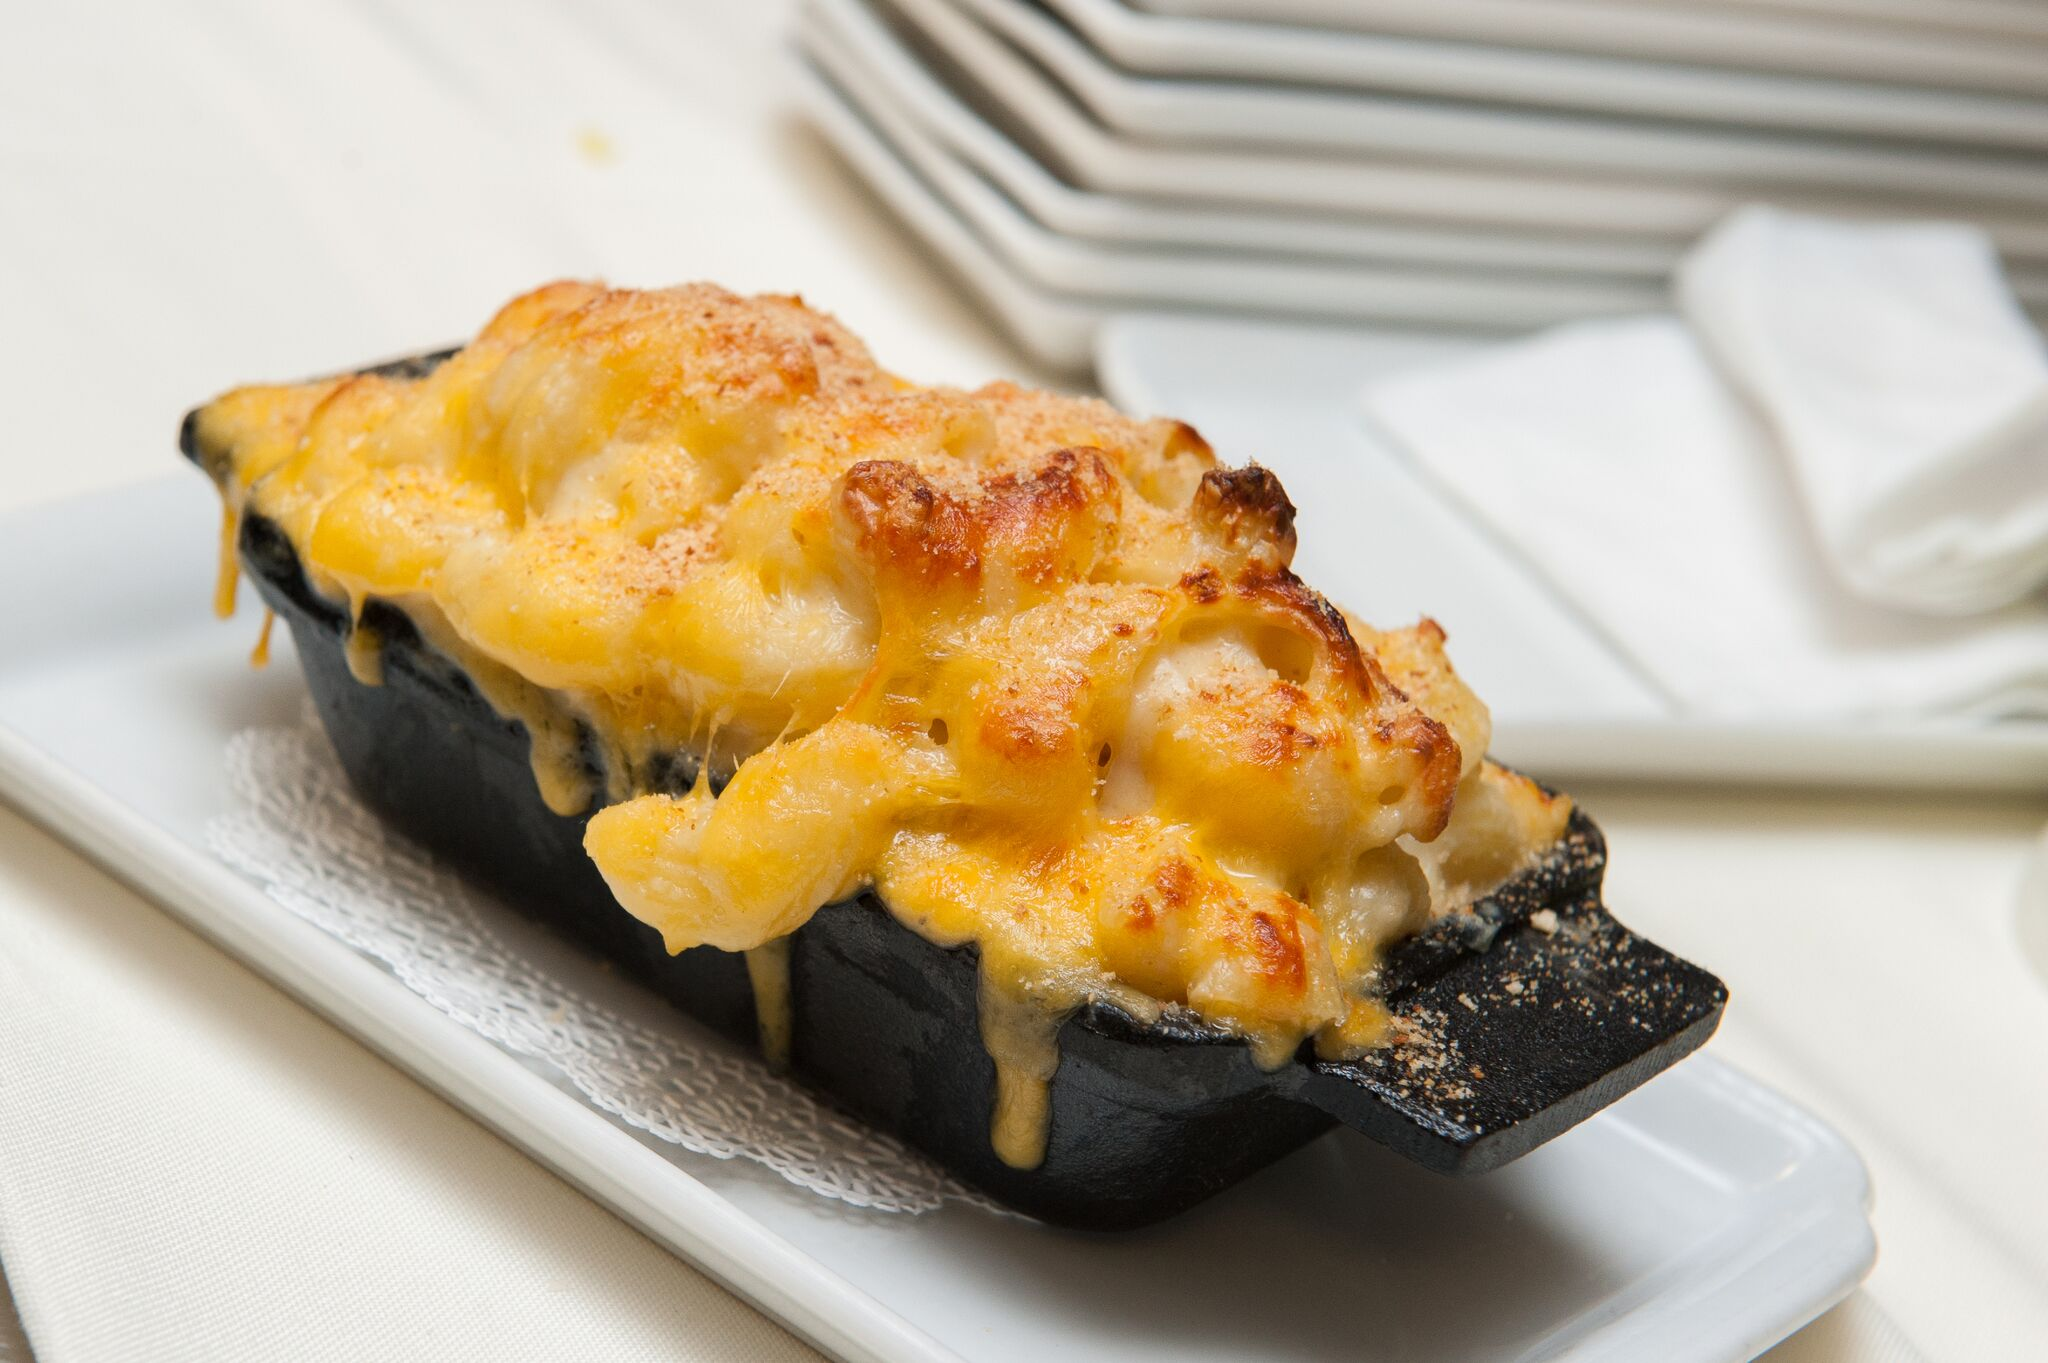 Truffled Mac and Cheese at Equinox Restaurant (Photo credit: Equinox Restaurant)<p></p>